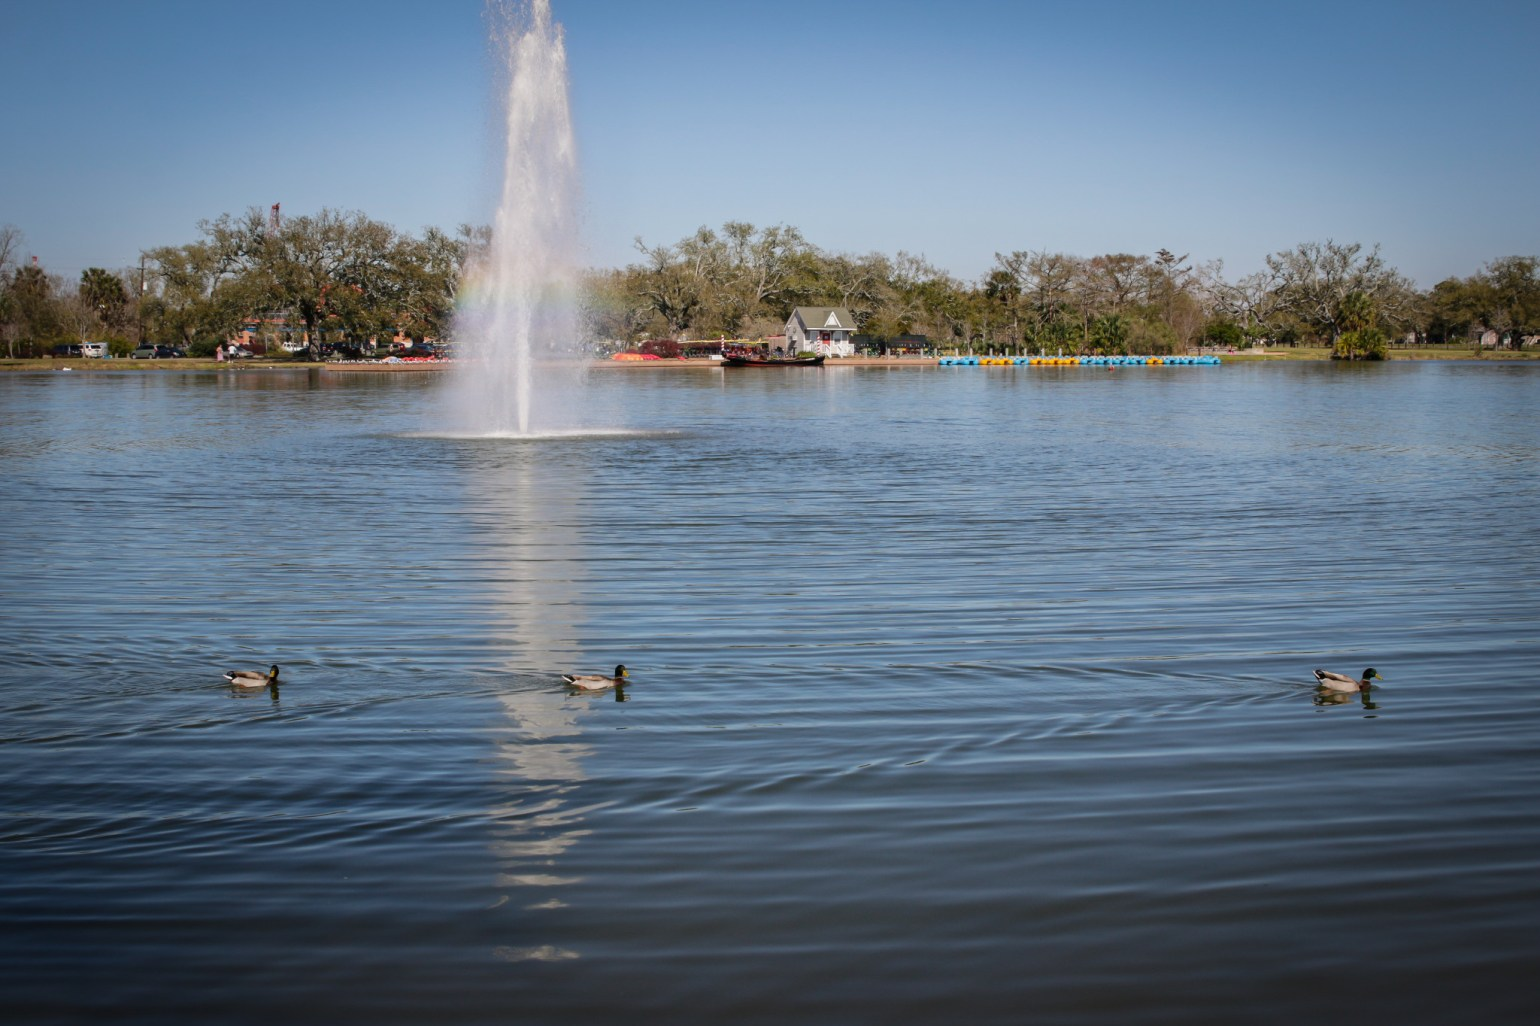 Big Lake in City Park will be full of rubber ducks this Saturday! Photo: Paul Broussard